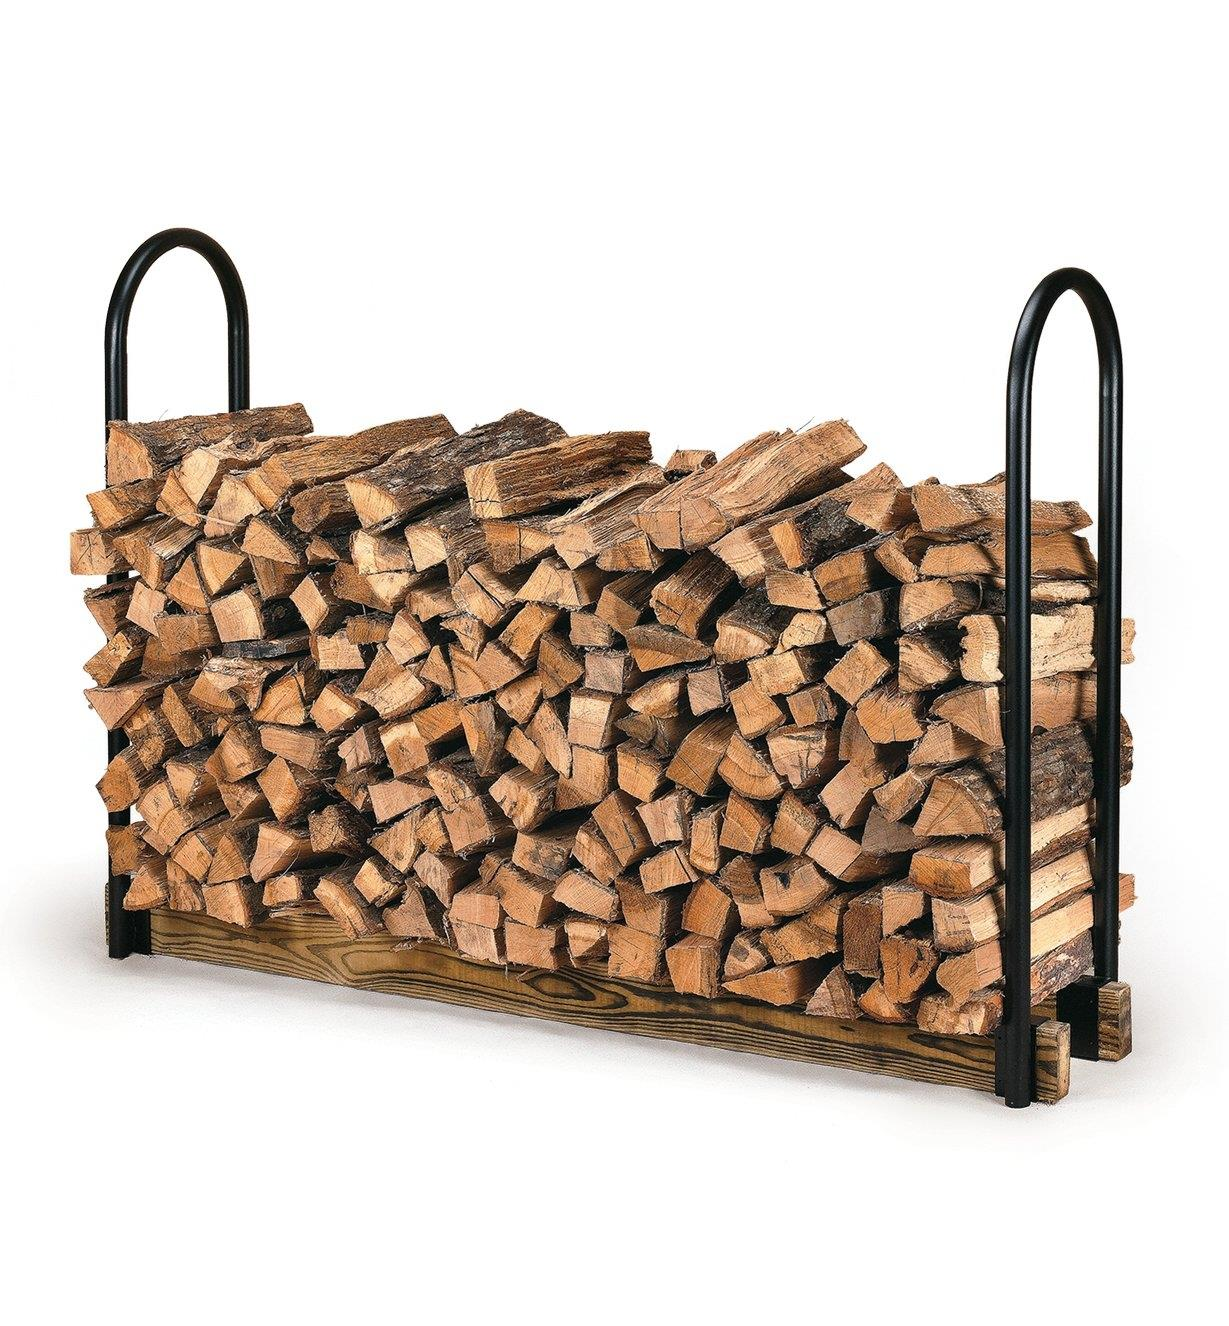 WS203 - Firewood Storage Rack